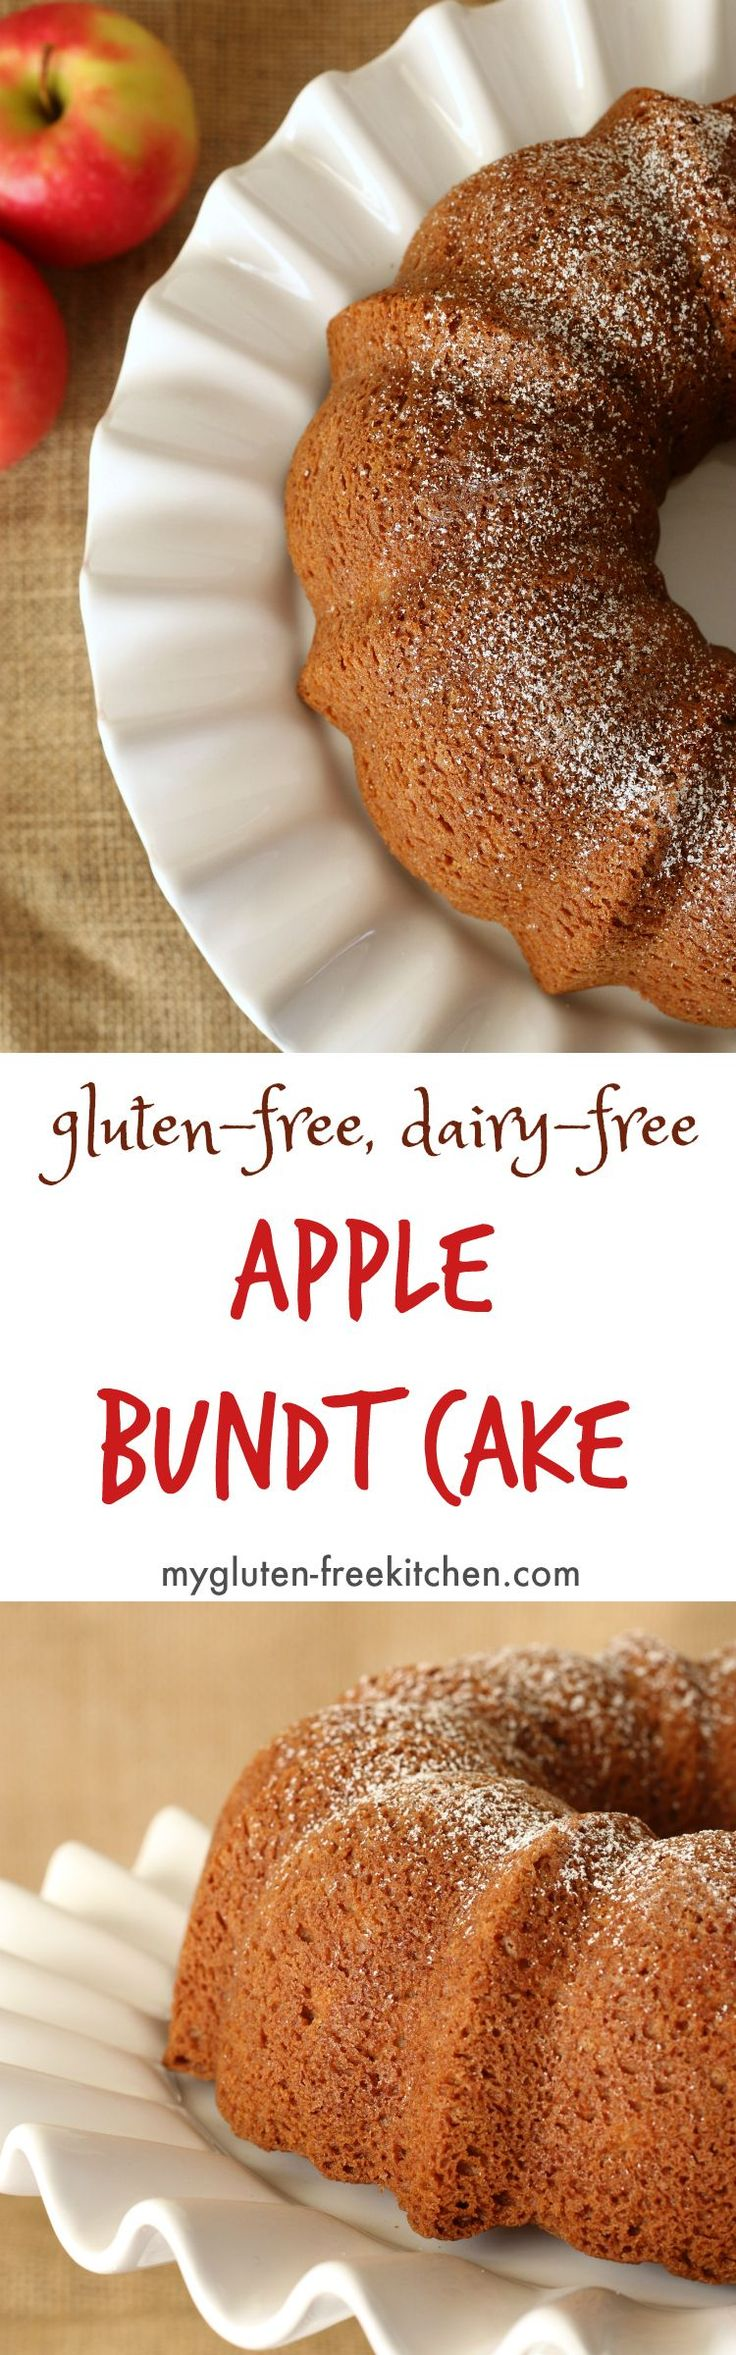 Gluten-free Dairy-free Apple Bundt Cake Recipe. This was so easy and so good!